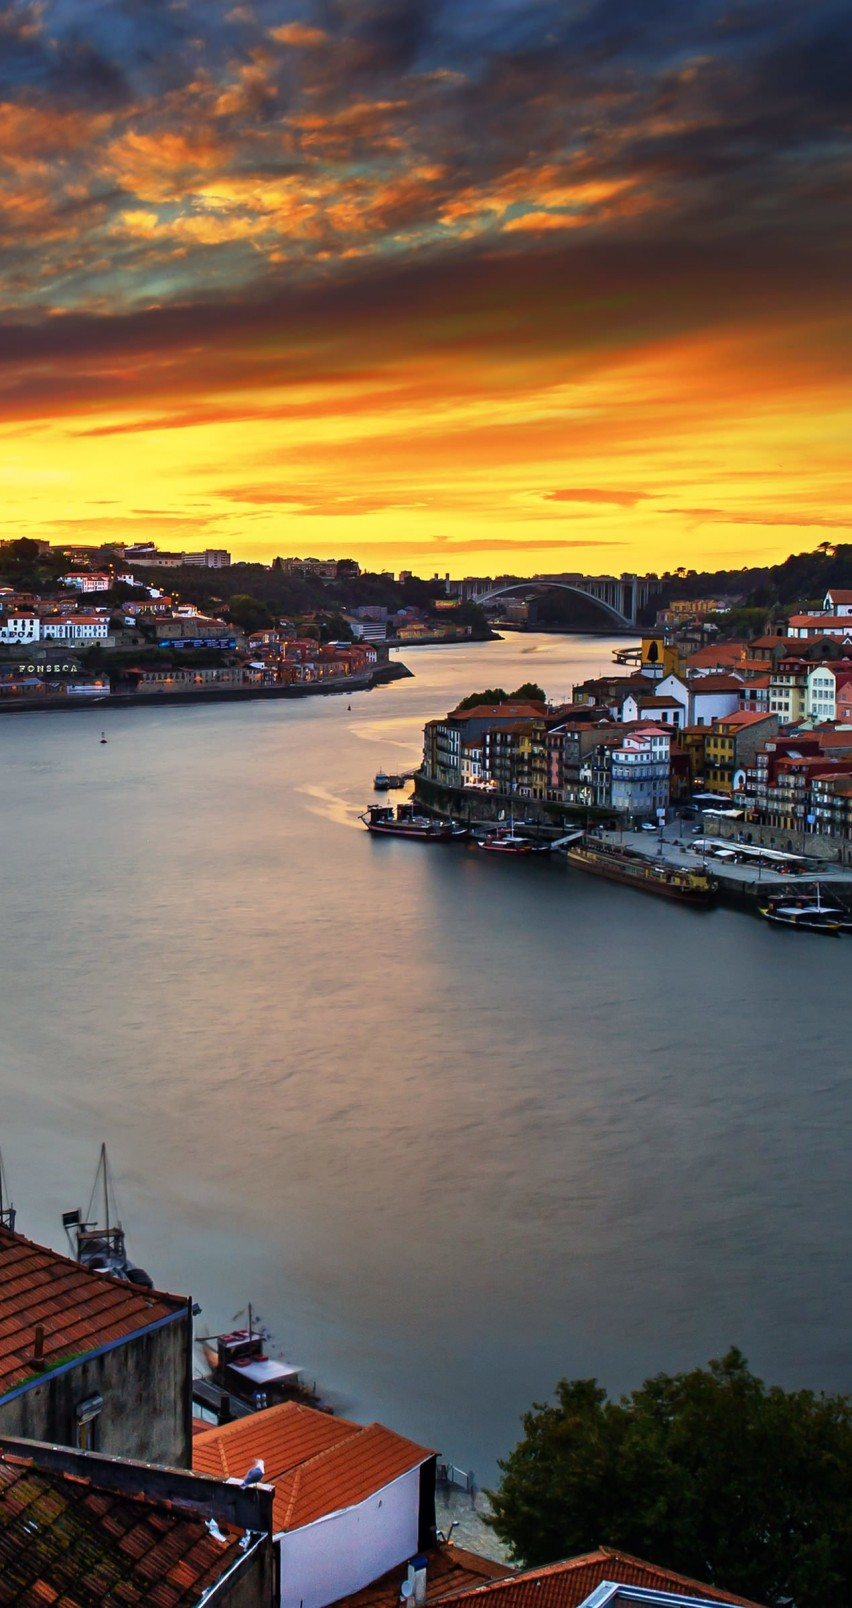 Enchanting Porto Wallpaper for Apple iPhone 6 / 6s